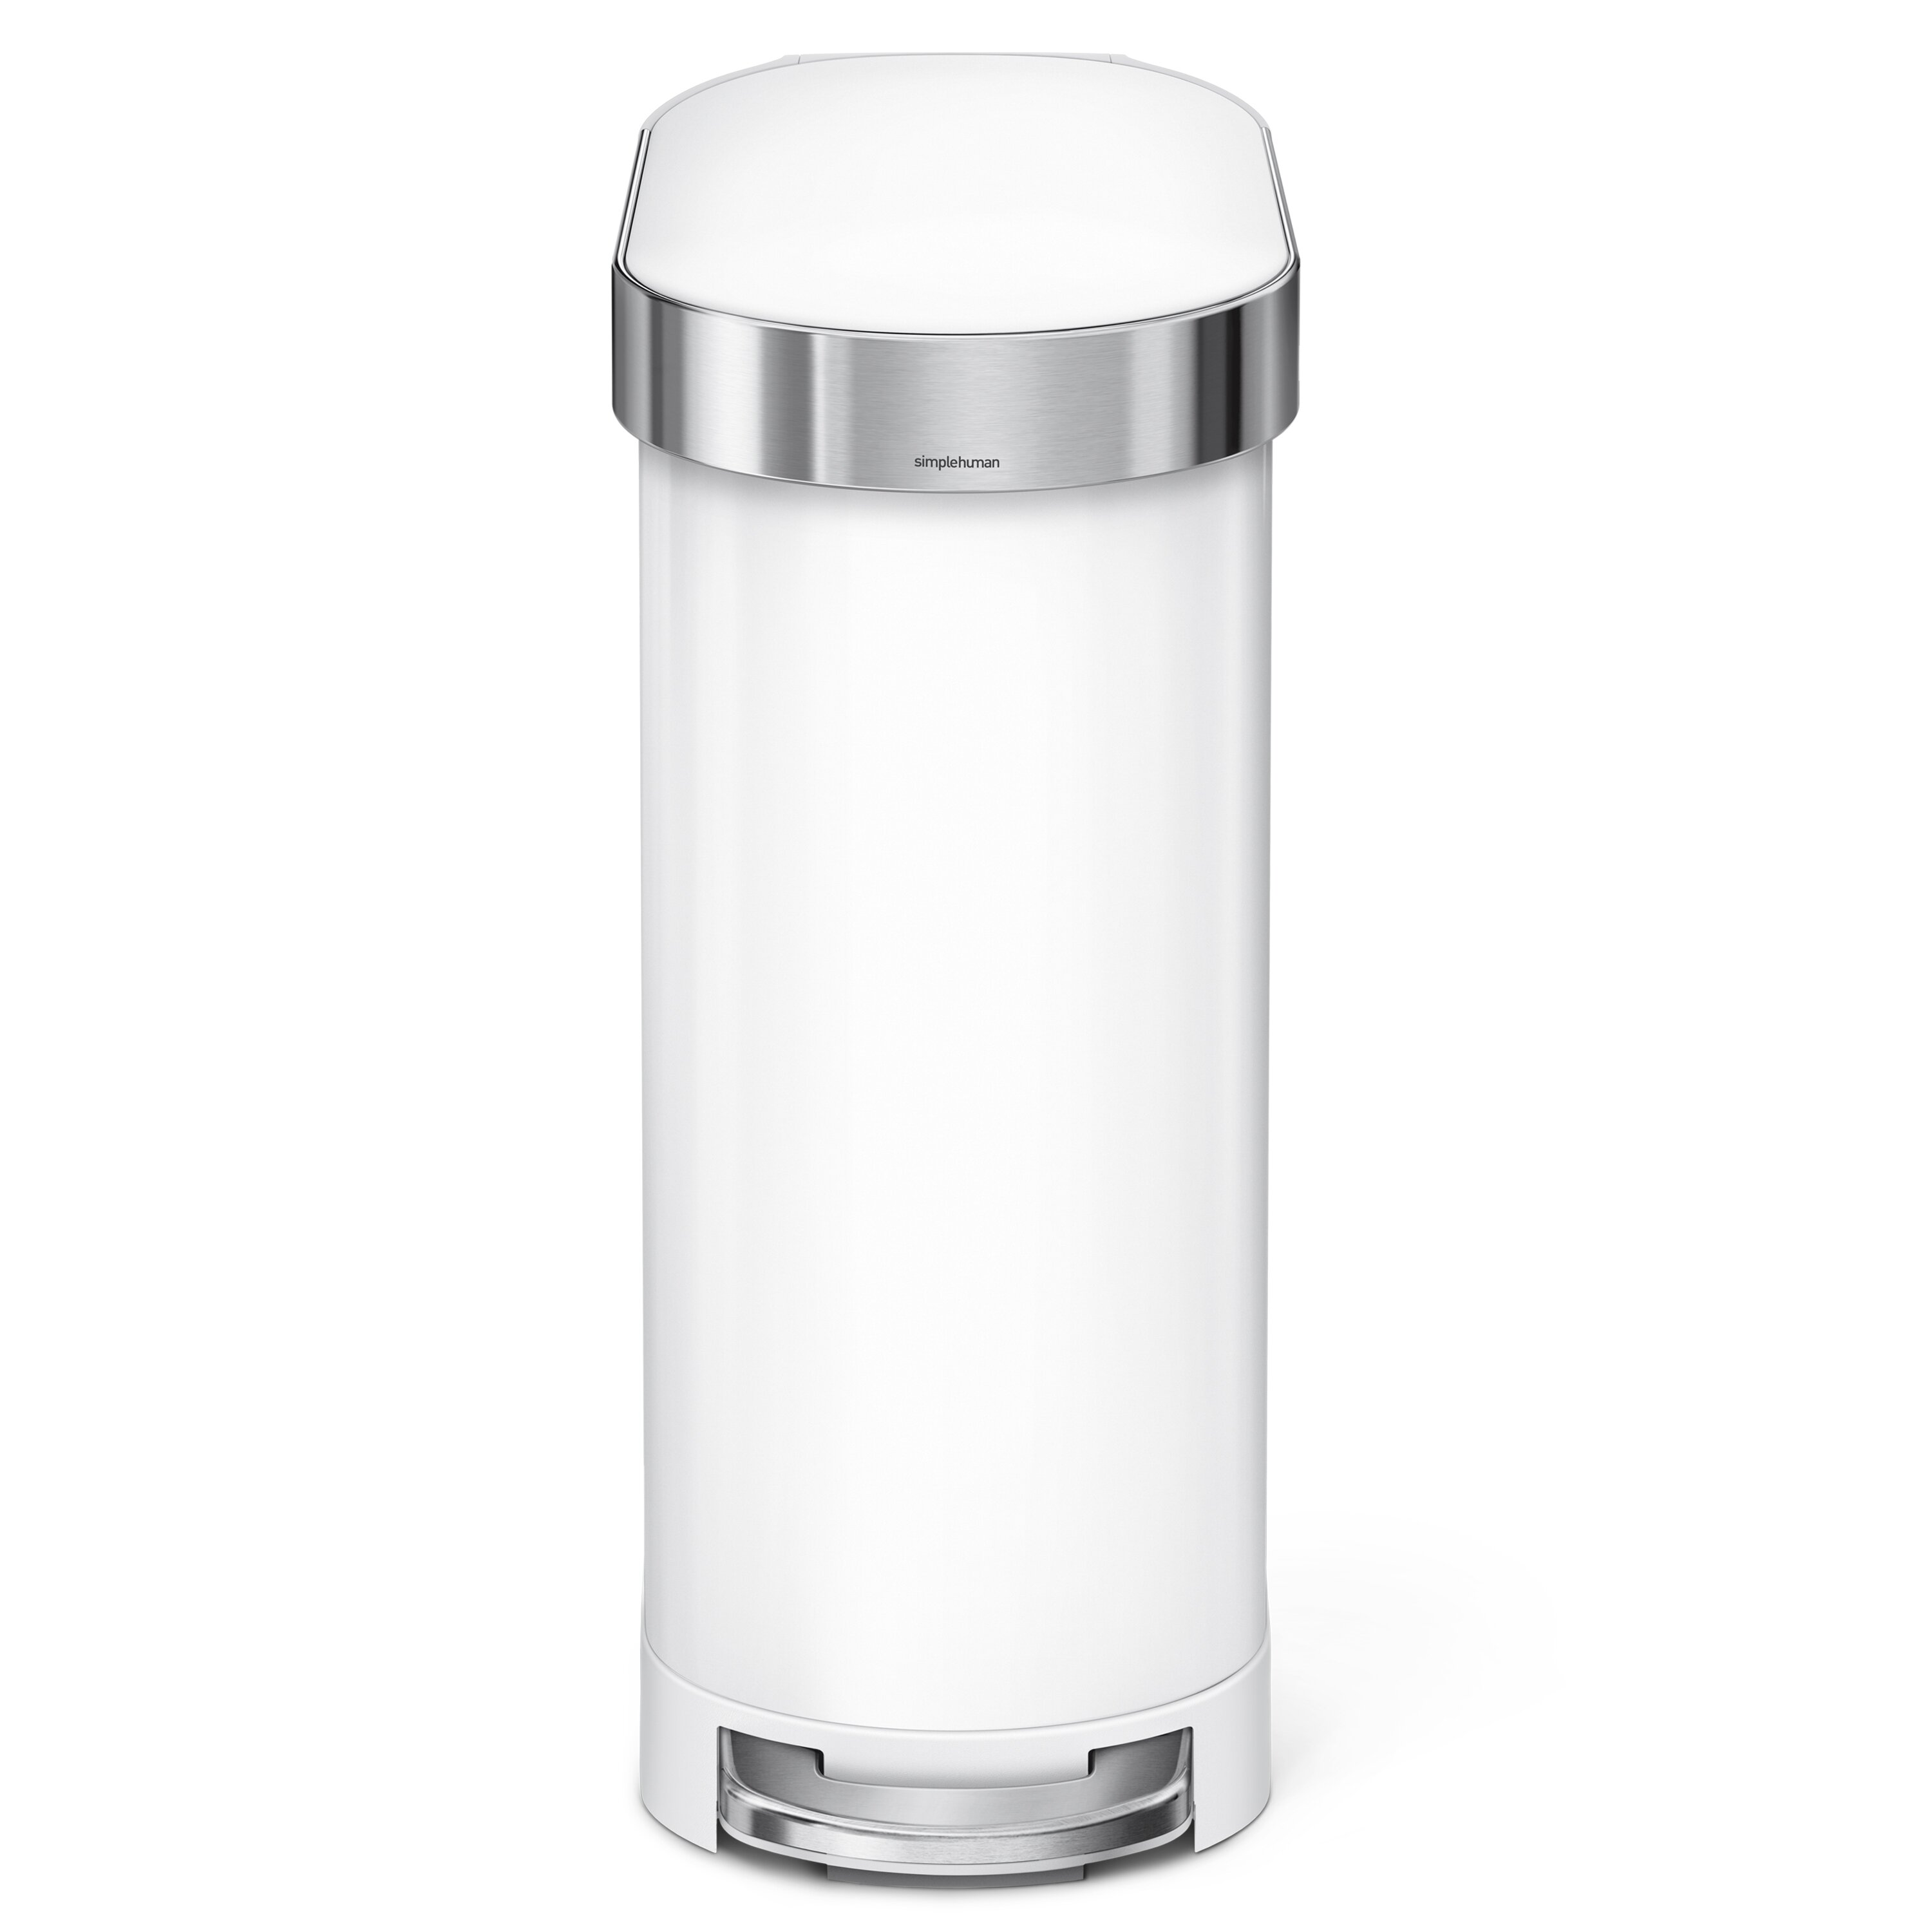 . 45 Liter Slim Step Stainless Steel Trash Can with Liner Rim